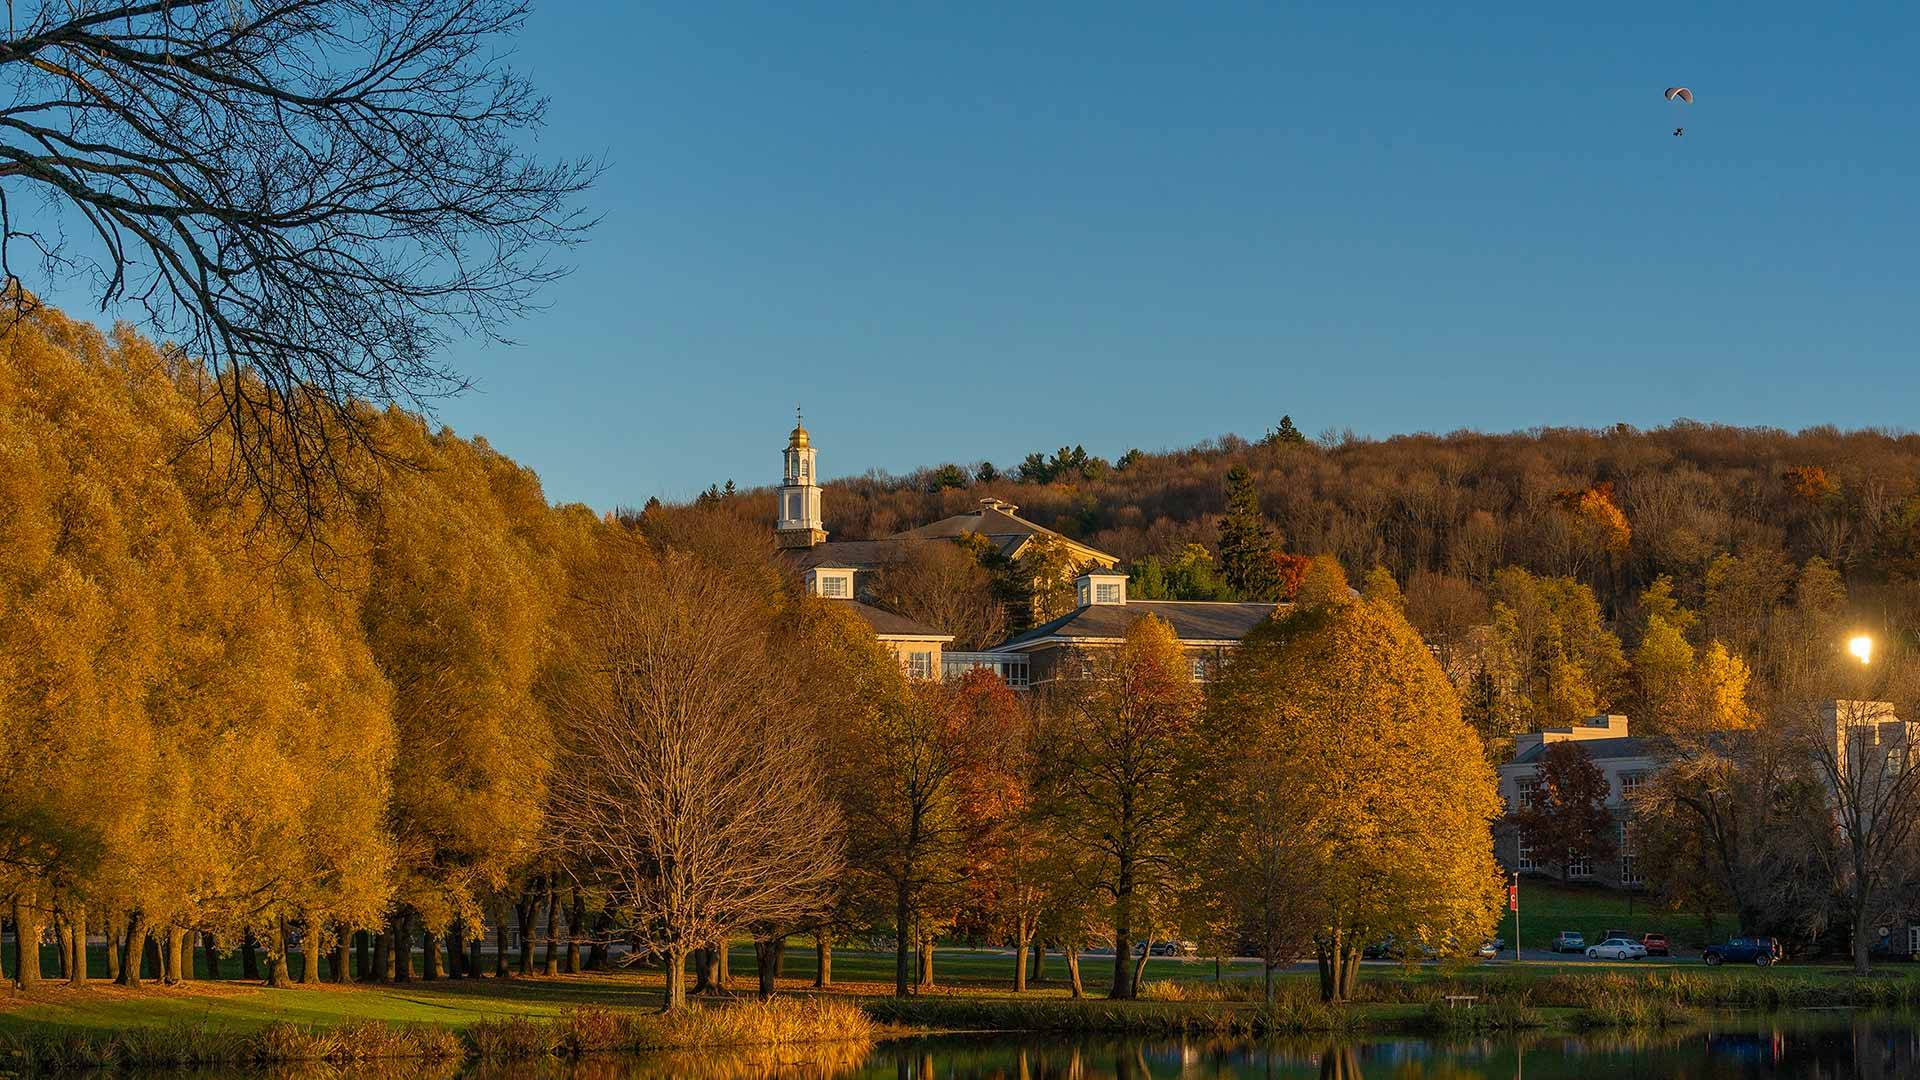 A scenic view of the campus over Taylor Lake with the Memorial Chapel cupola in the background.